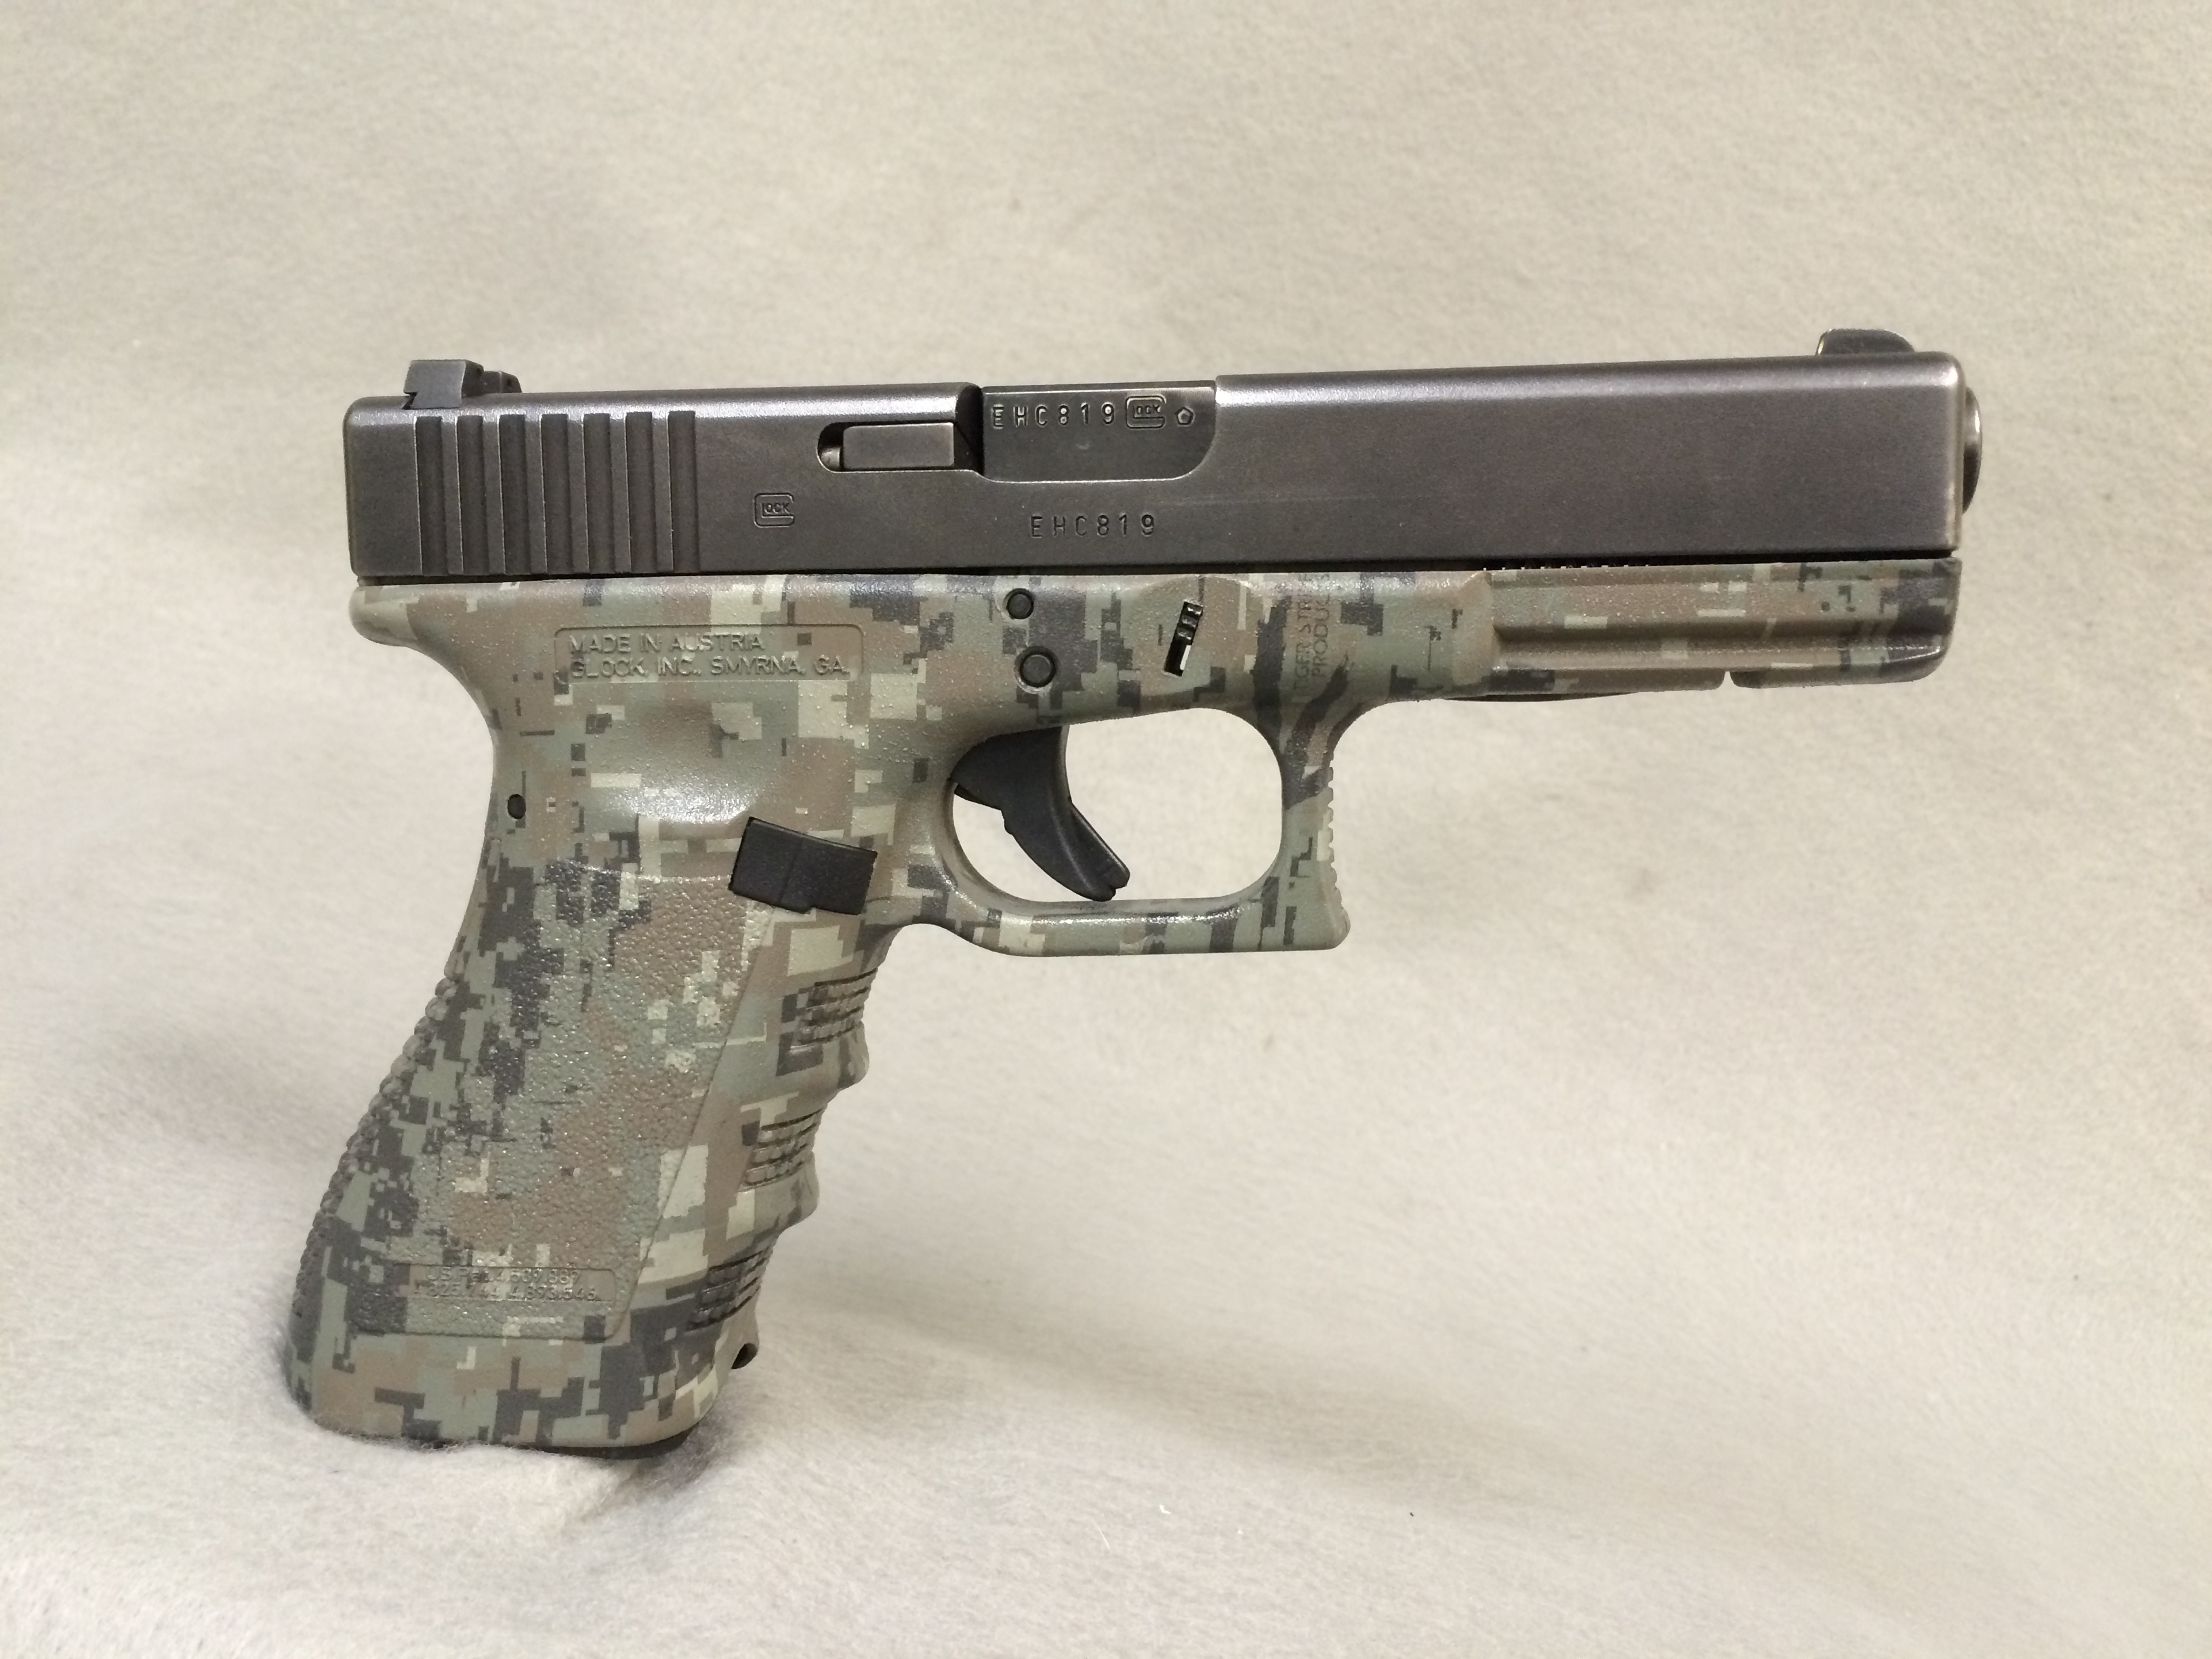 Glock 22 with USMC Digi Pattern on frame